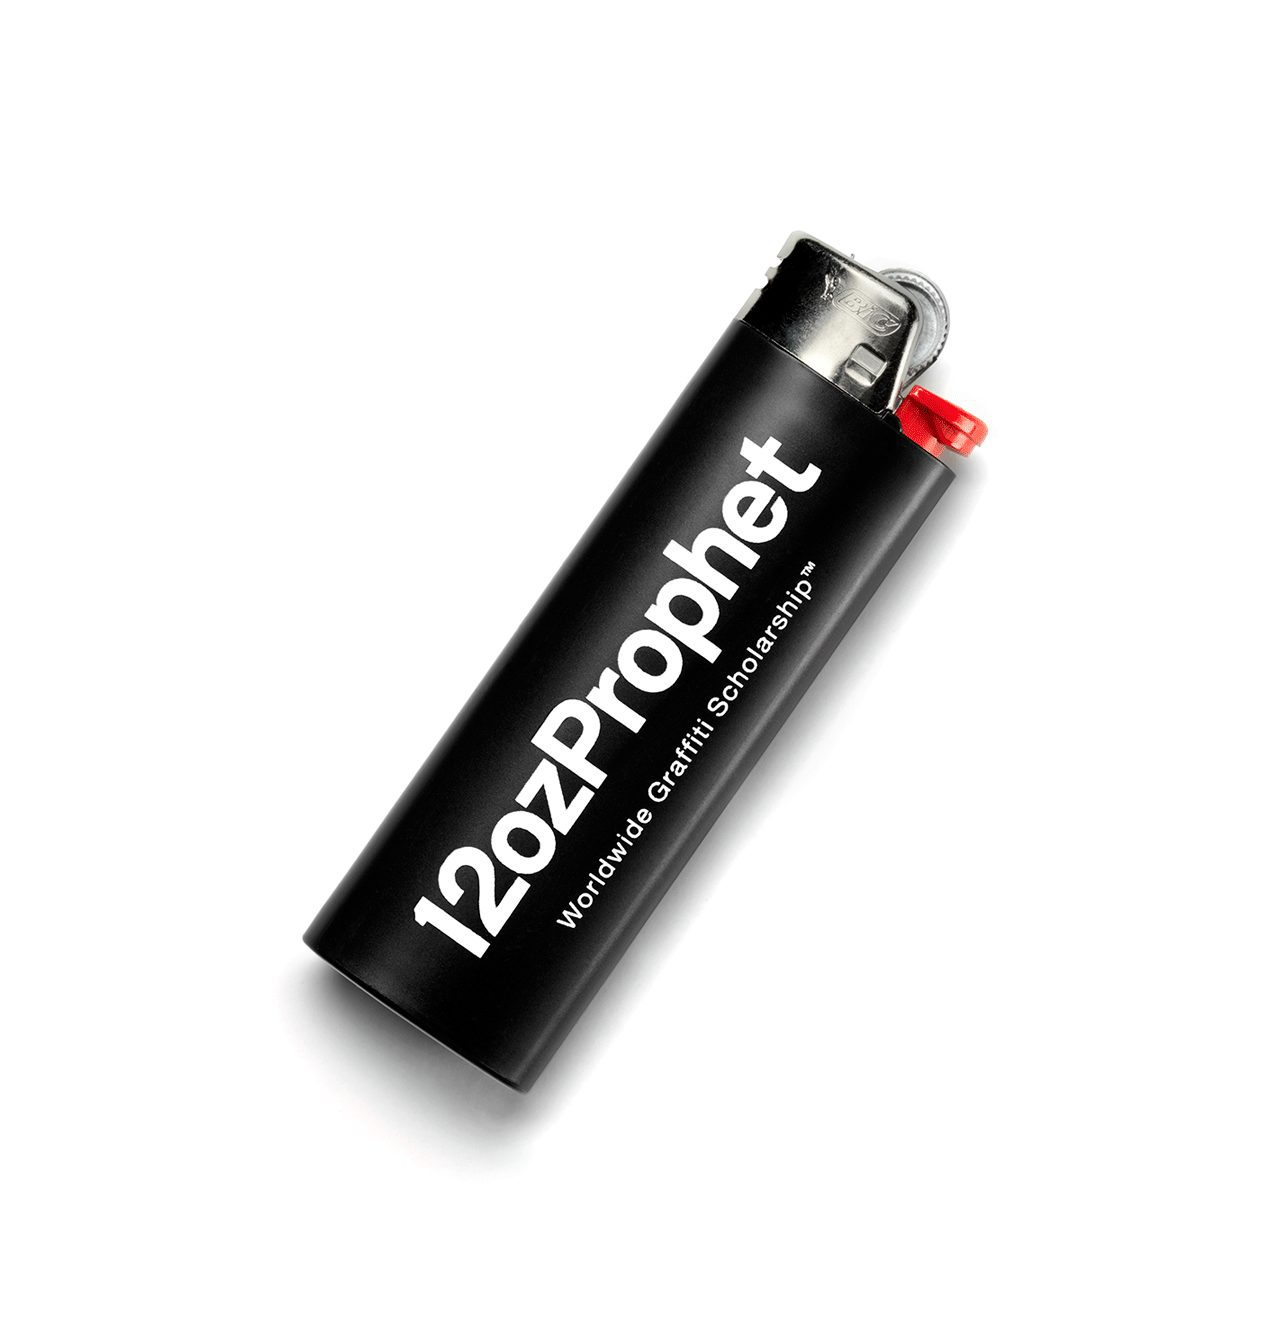 12ozProphet Lighter